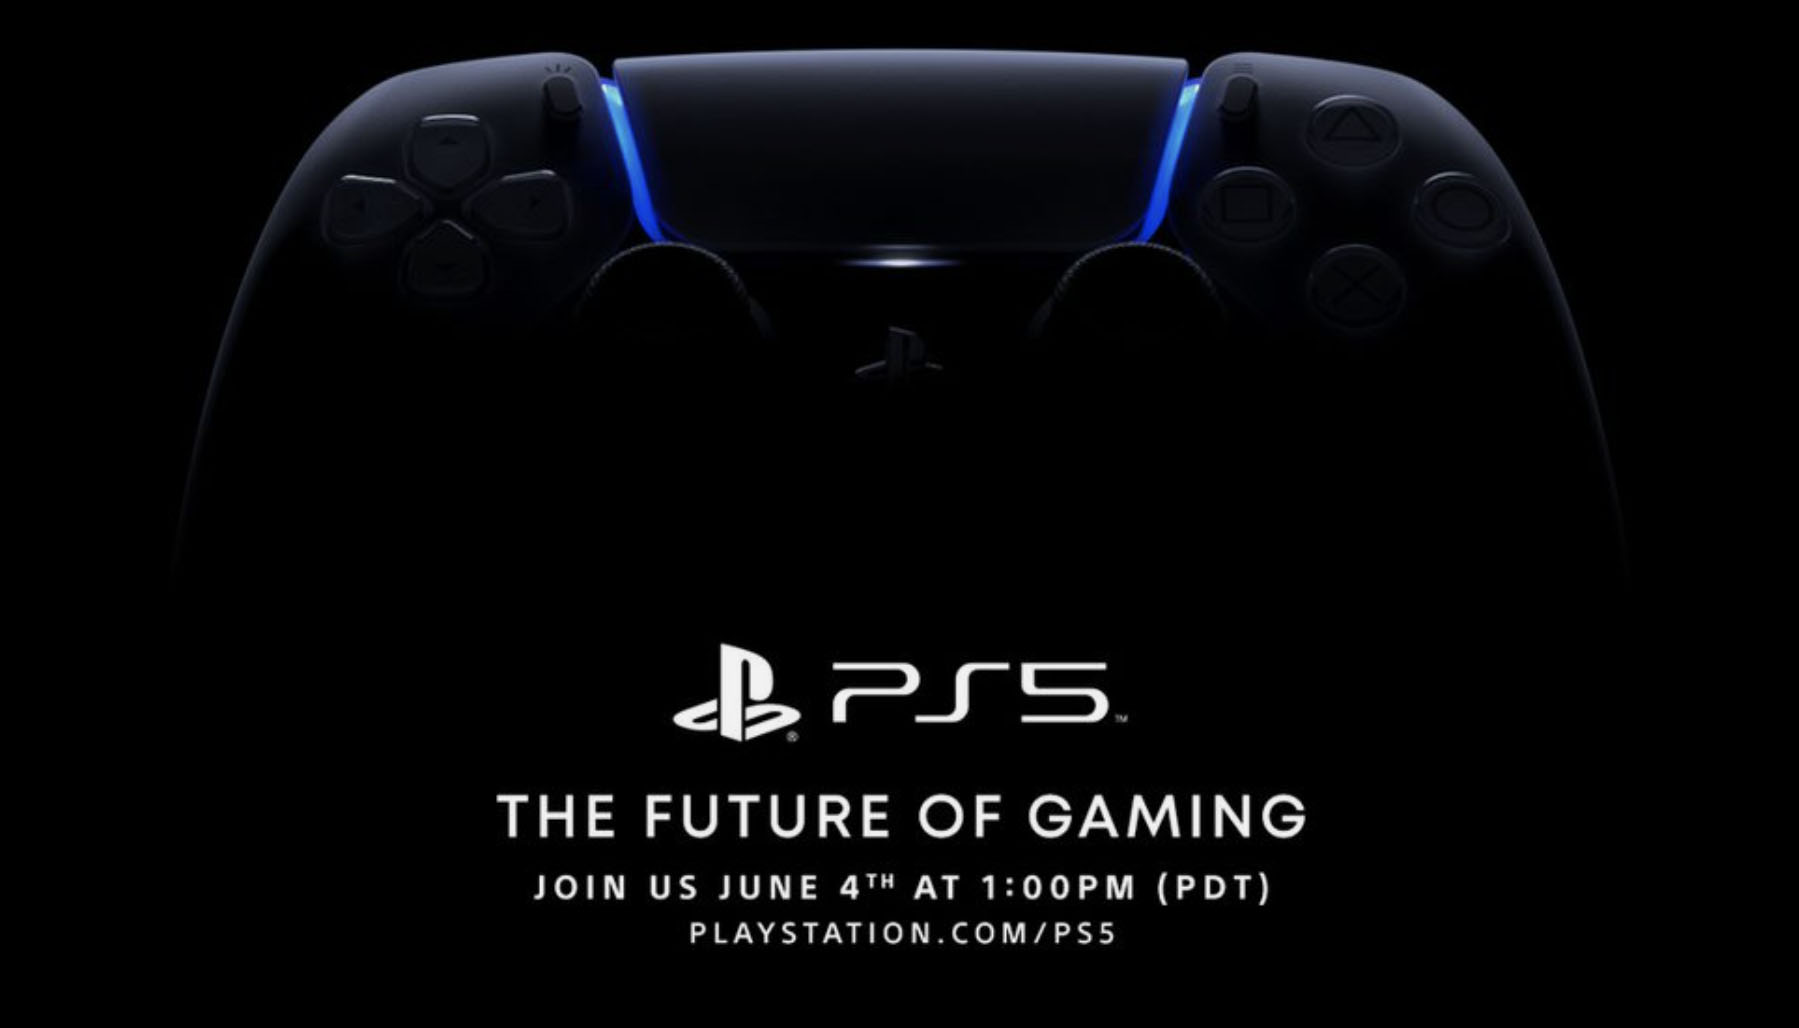 Newly Submitted PS4 Games Must Be PS5 Compatible Starting in July 2020